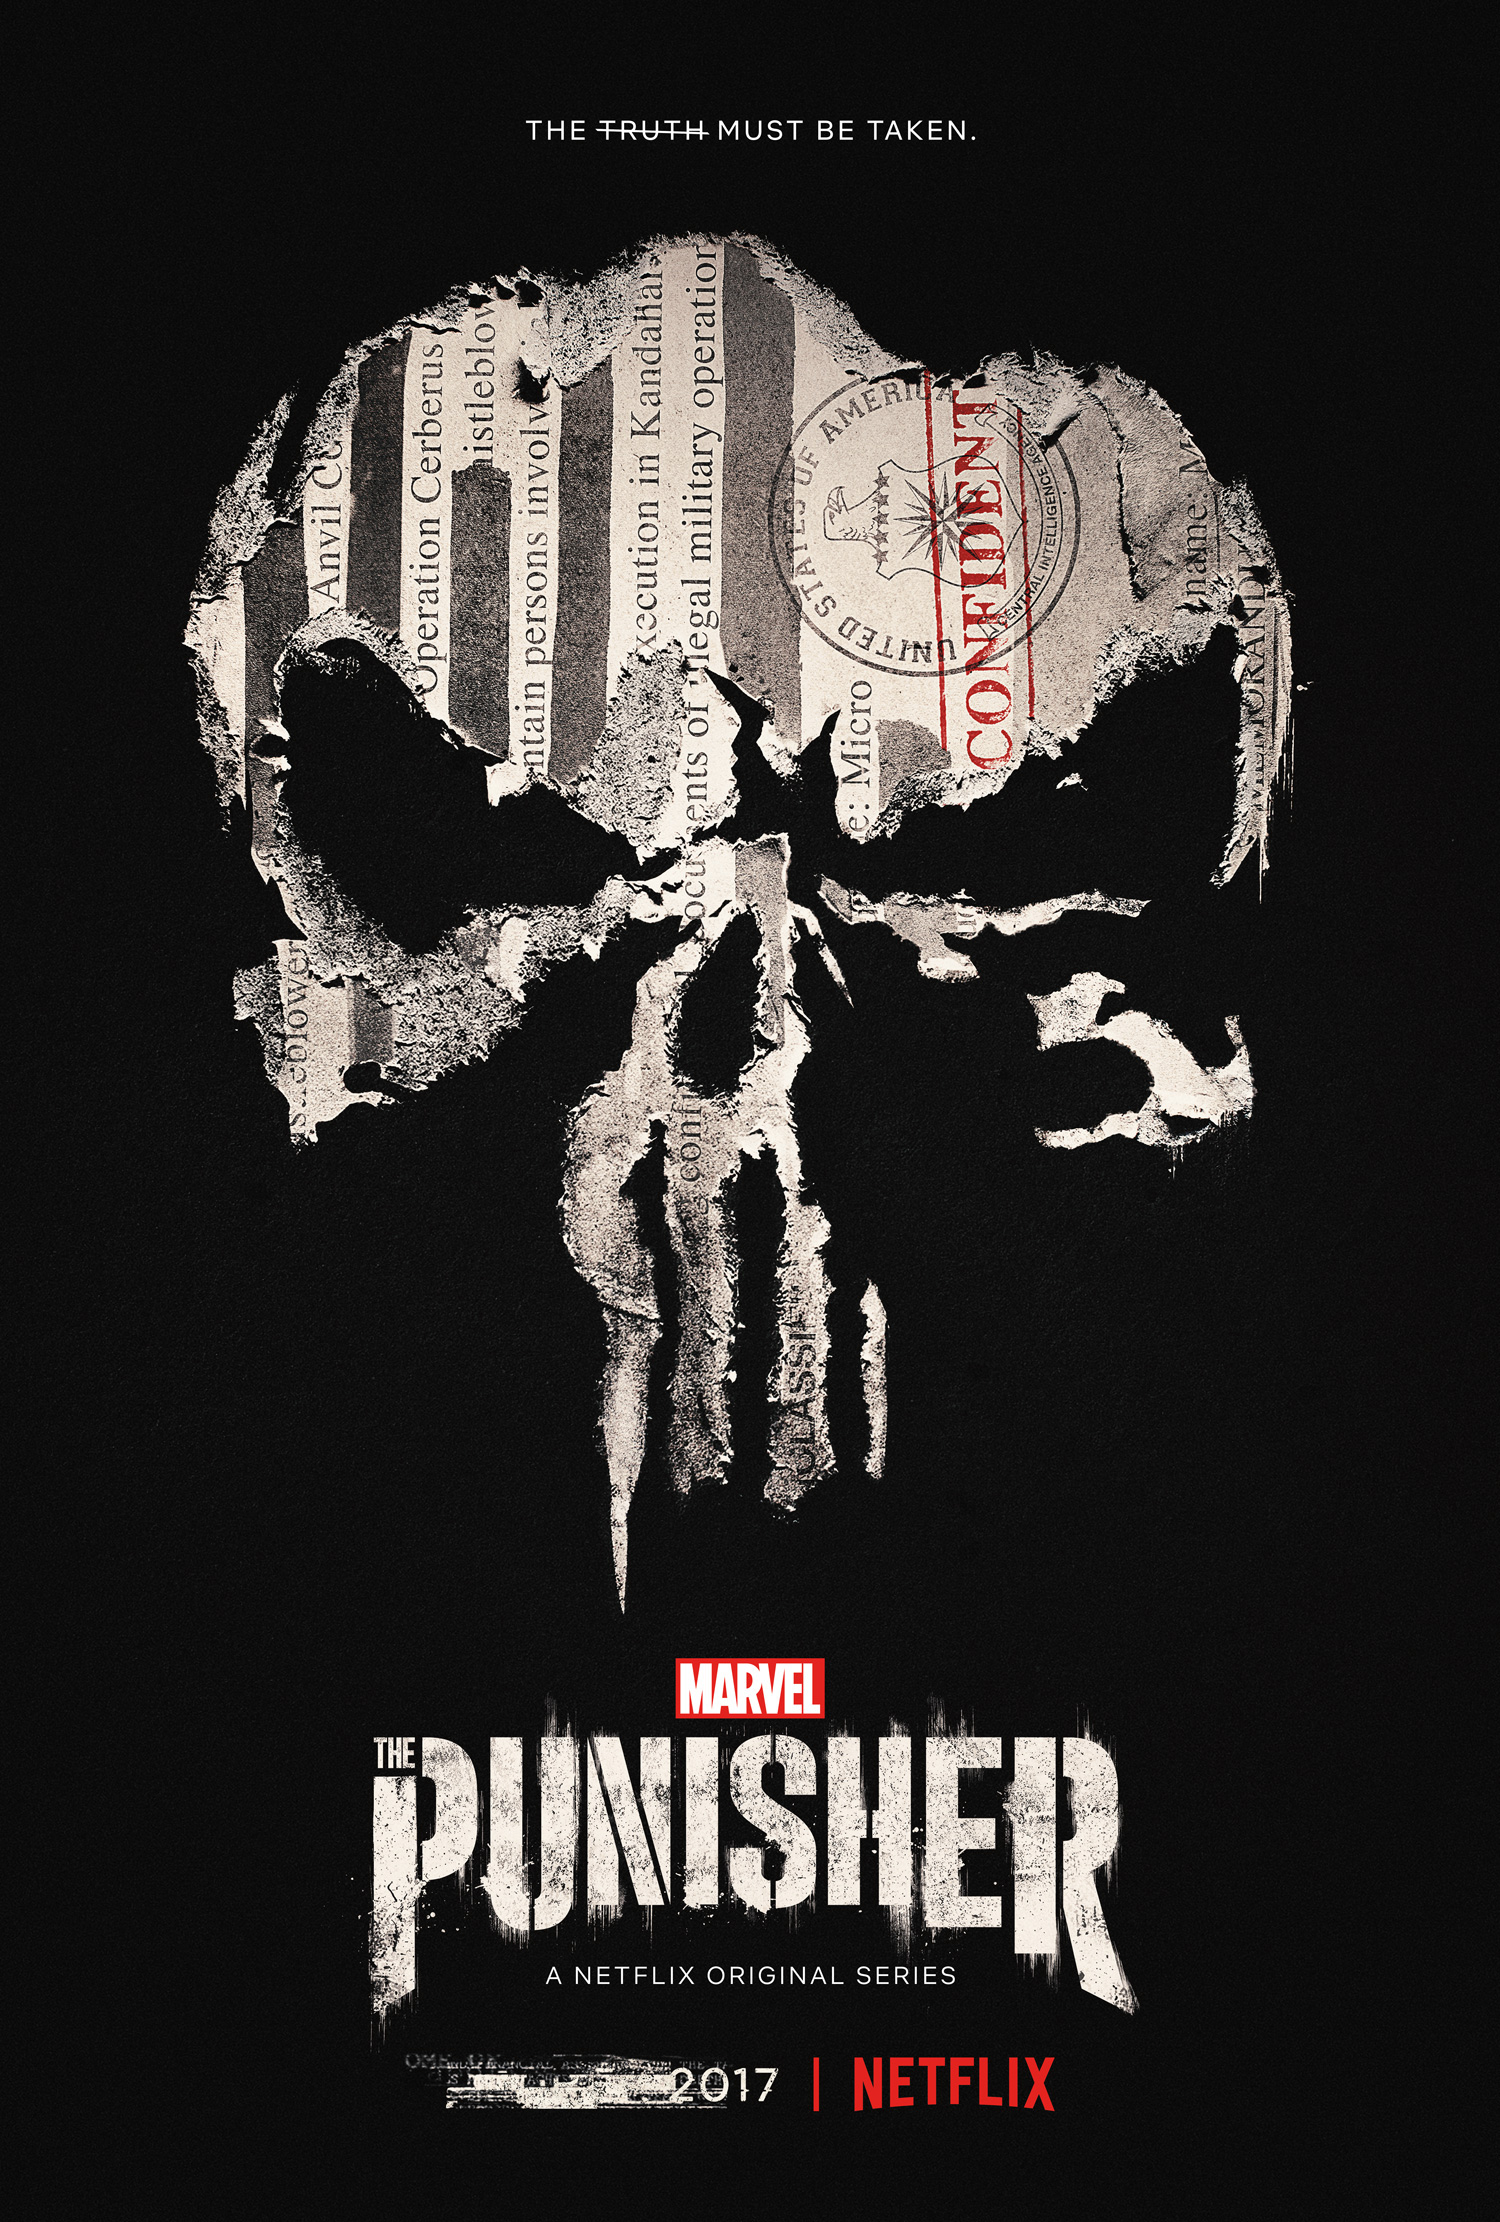 PUNISHER NETFLIX TRAILER